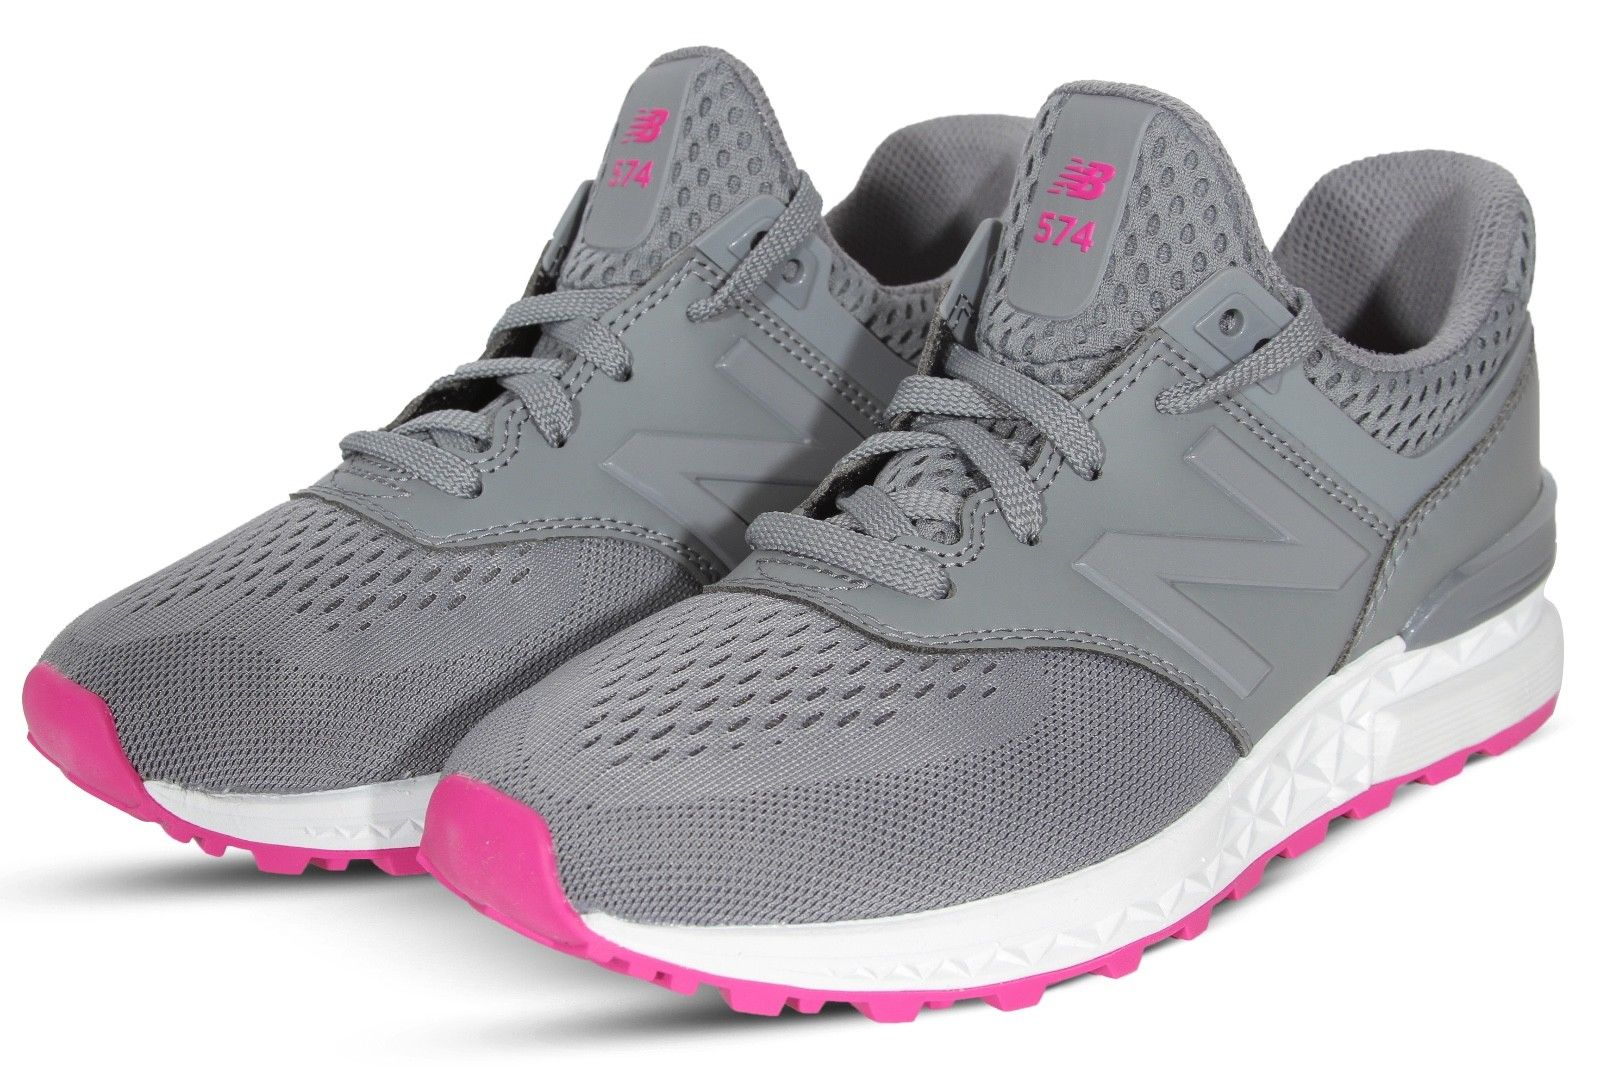 New Balance 574 Sport Classic Women s Running Shoes - modanet.com c7209ae98